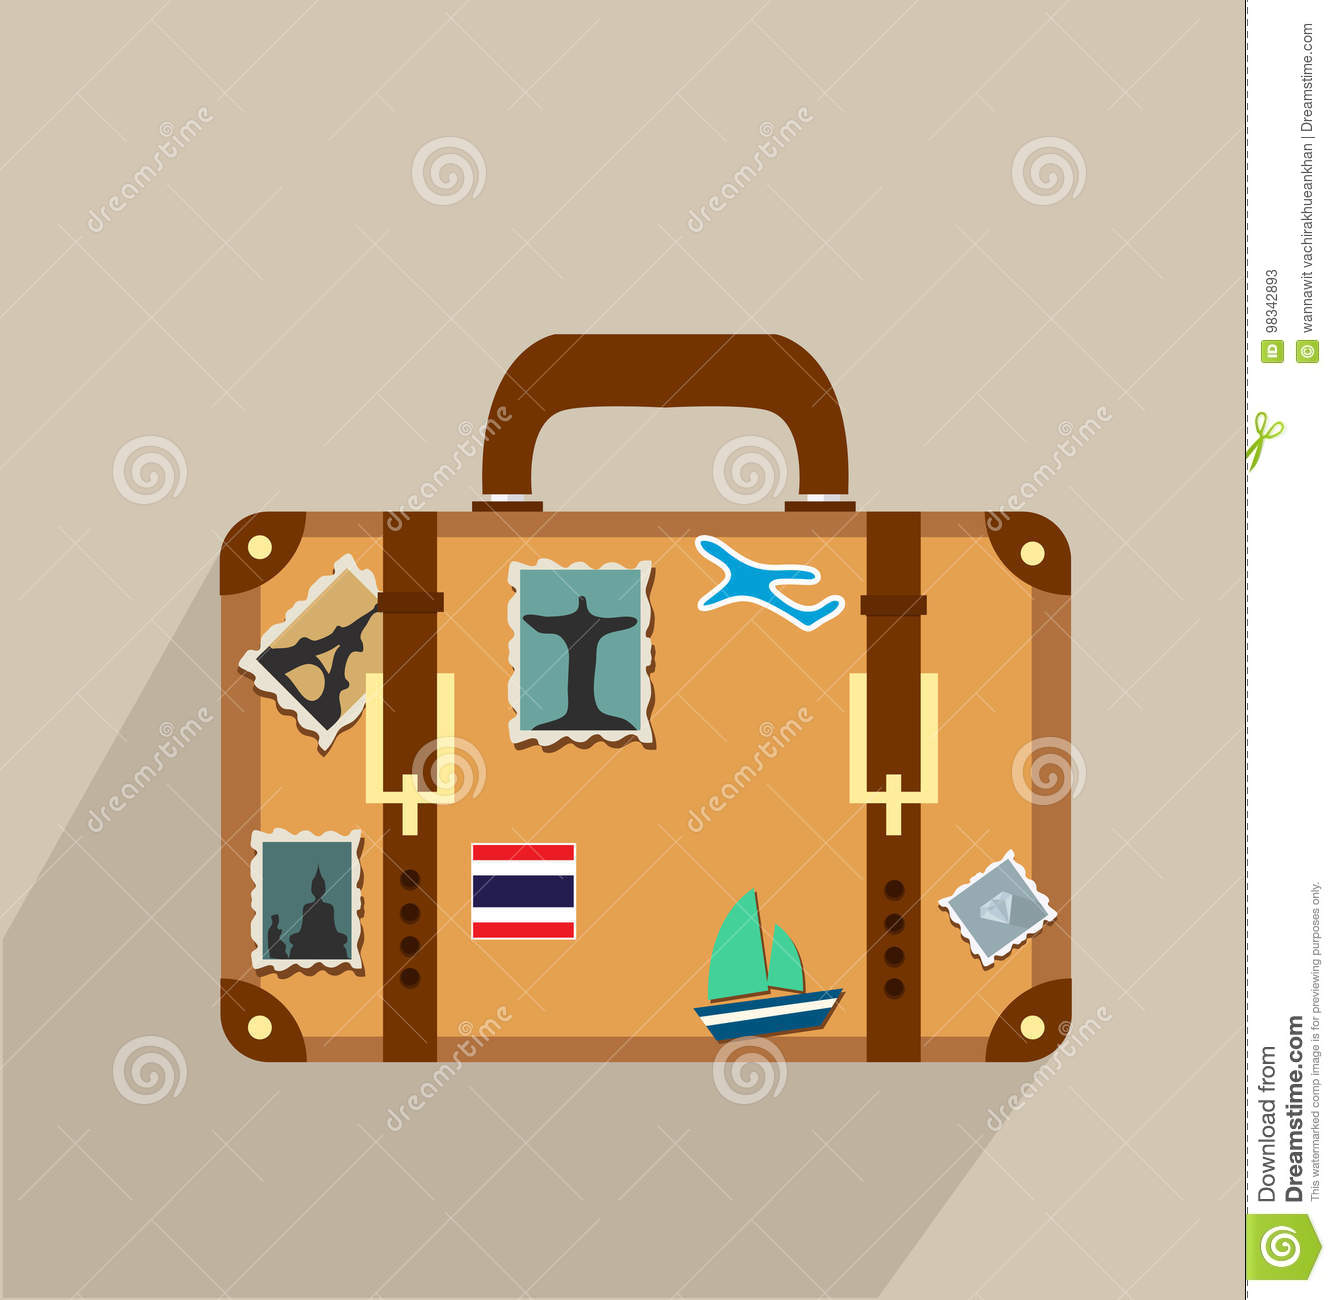 suitcase with stickers icon stock vector illustration of baggage